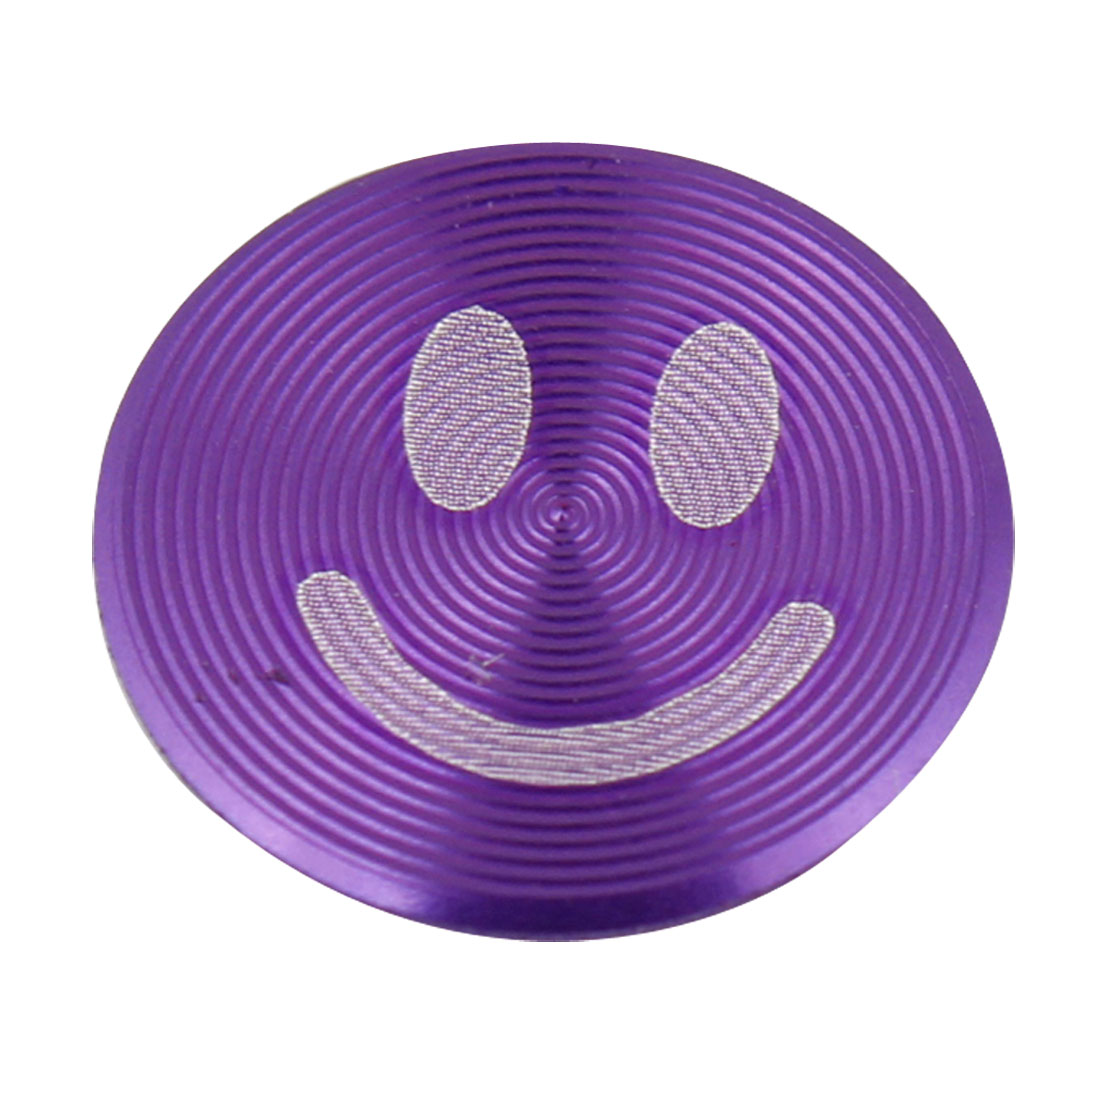 Metal Purple Smiling Face Home Button Stickers for Phone